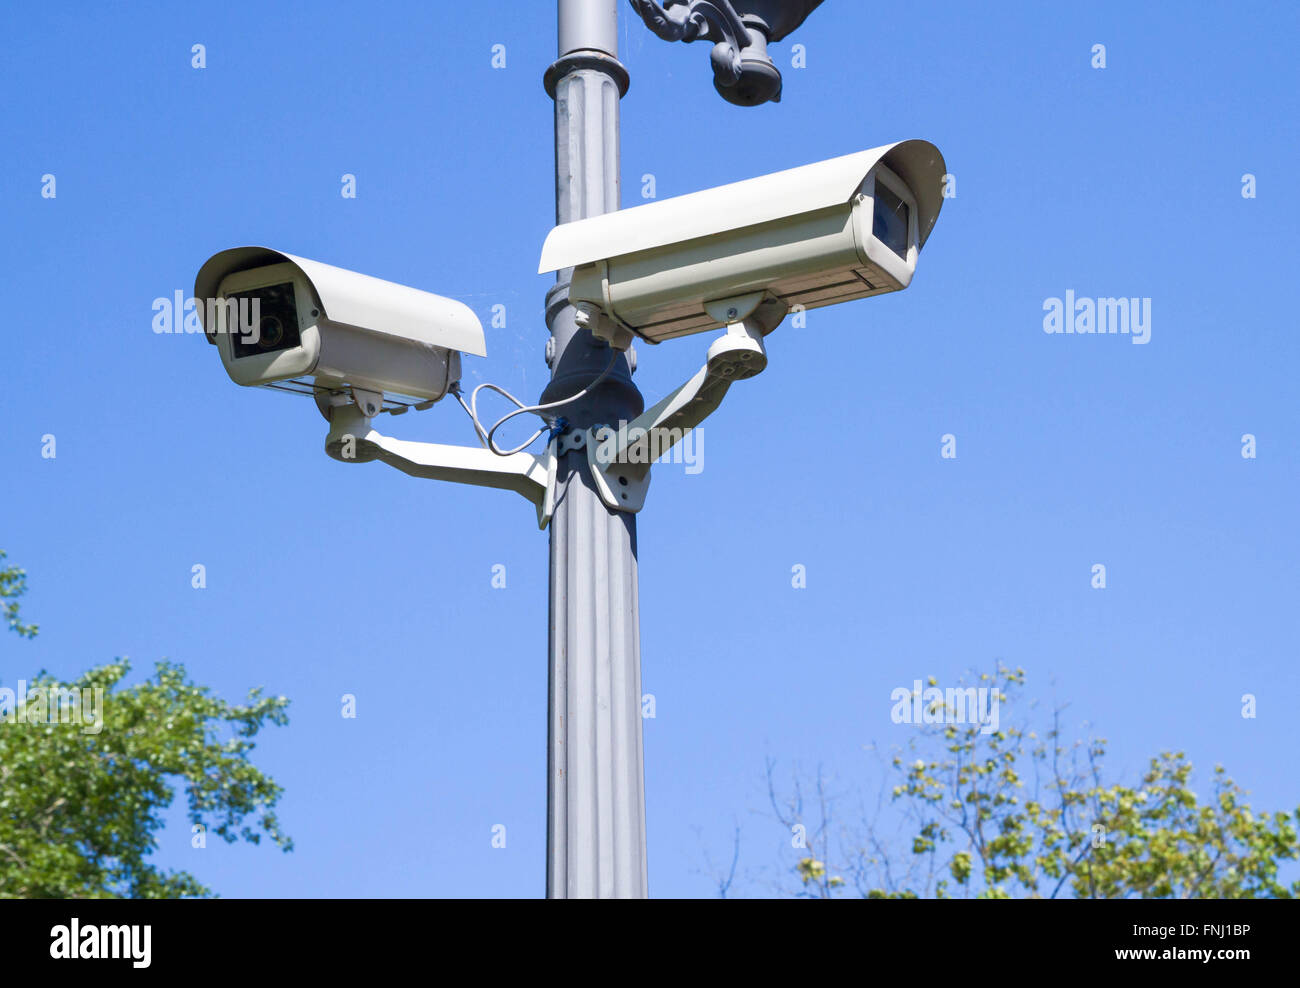 Surveillance camera on the electric pole - Stock Image